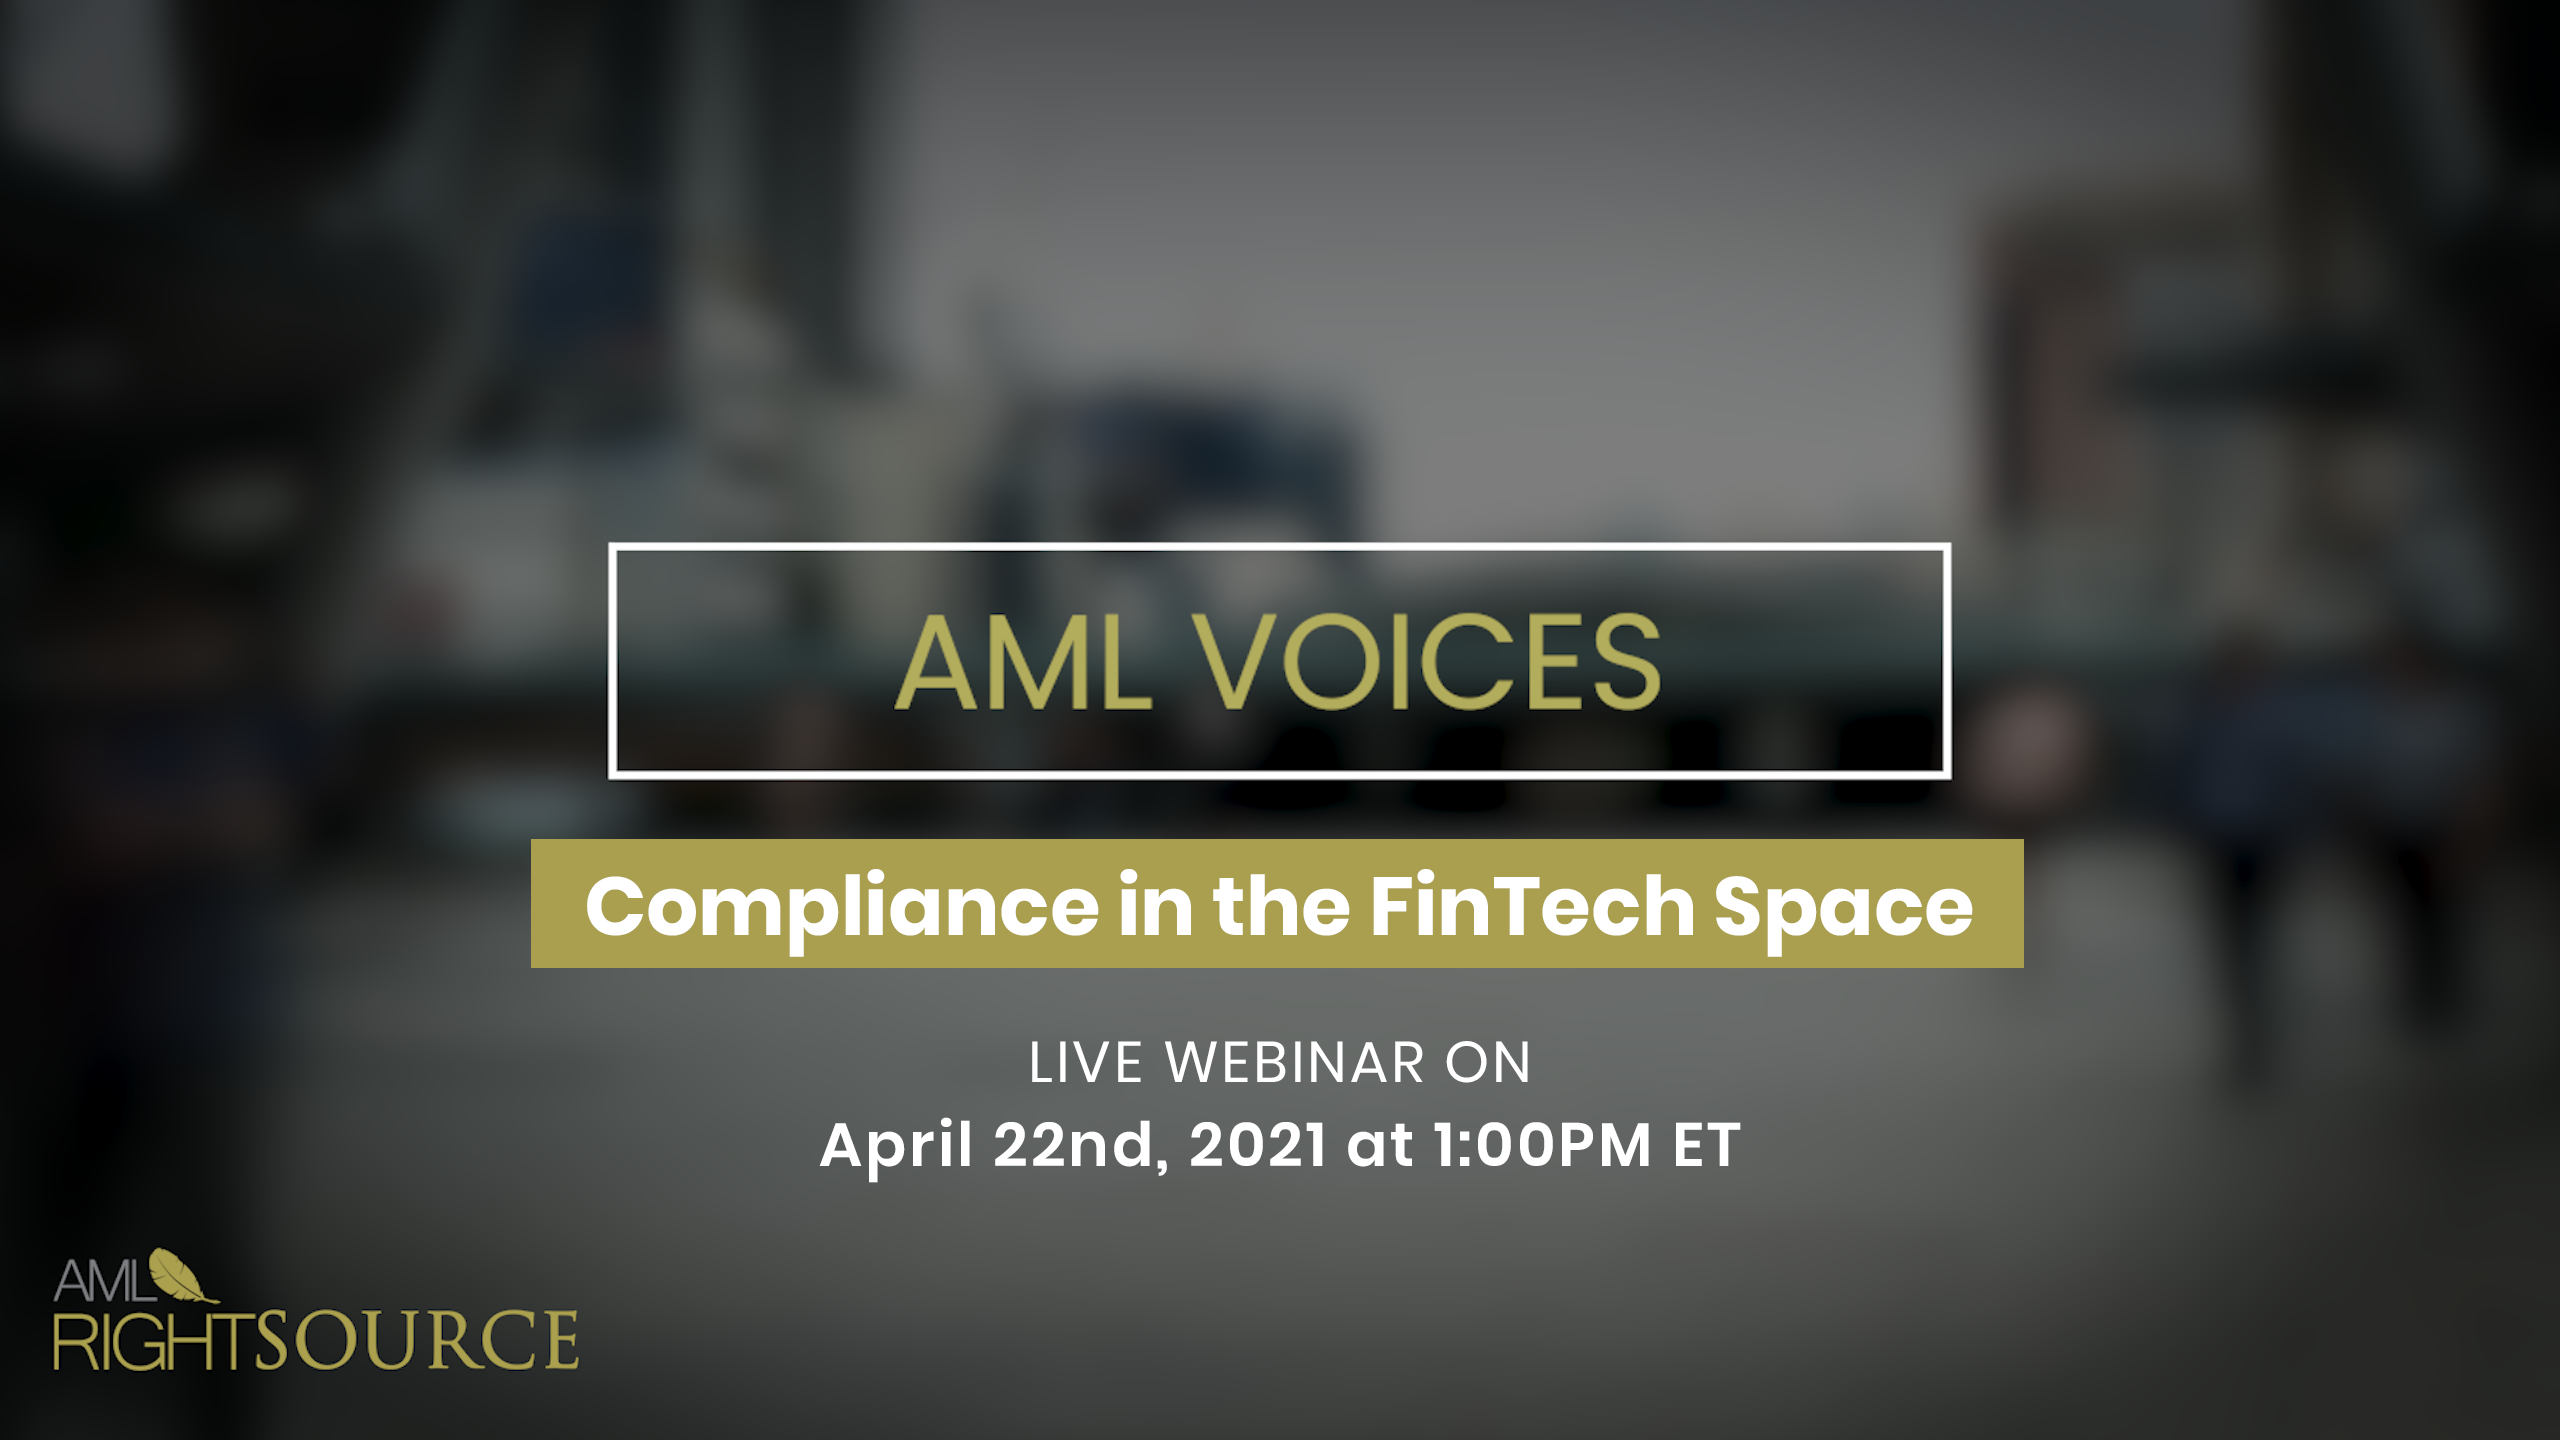 AML_Voices_Compliance_in_the_FinTech_Space_April_2021-1-1